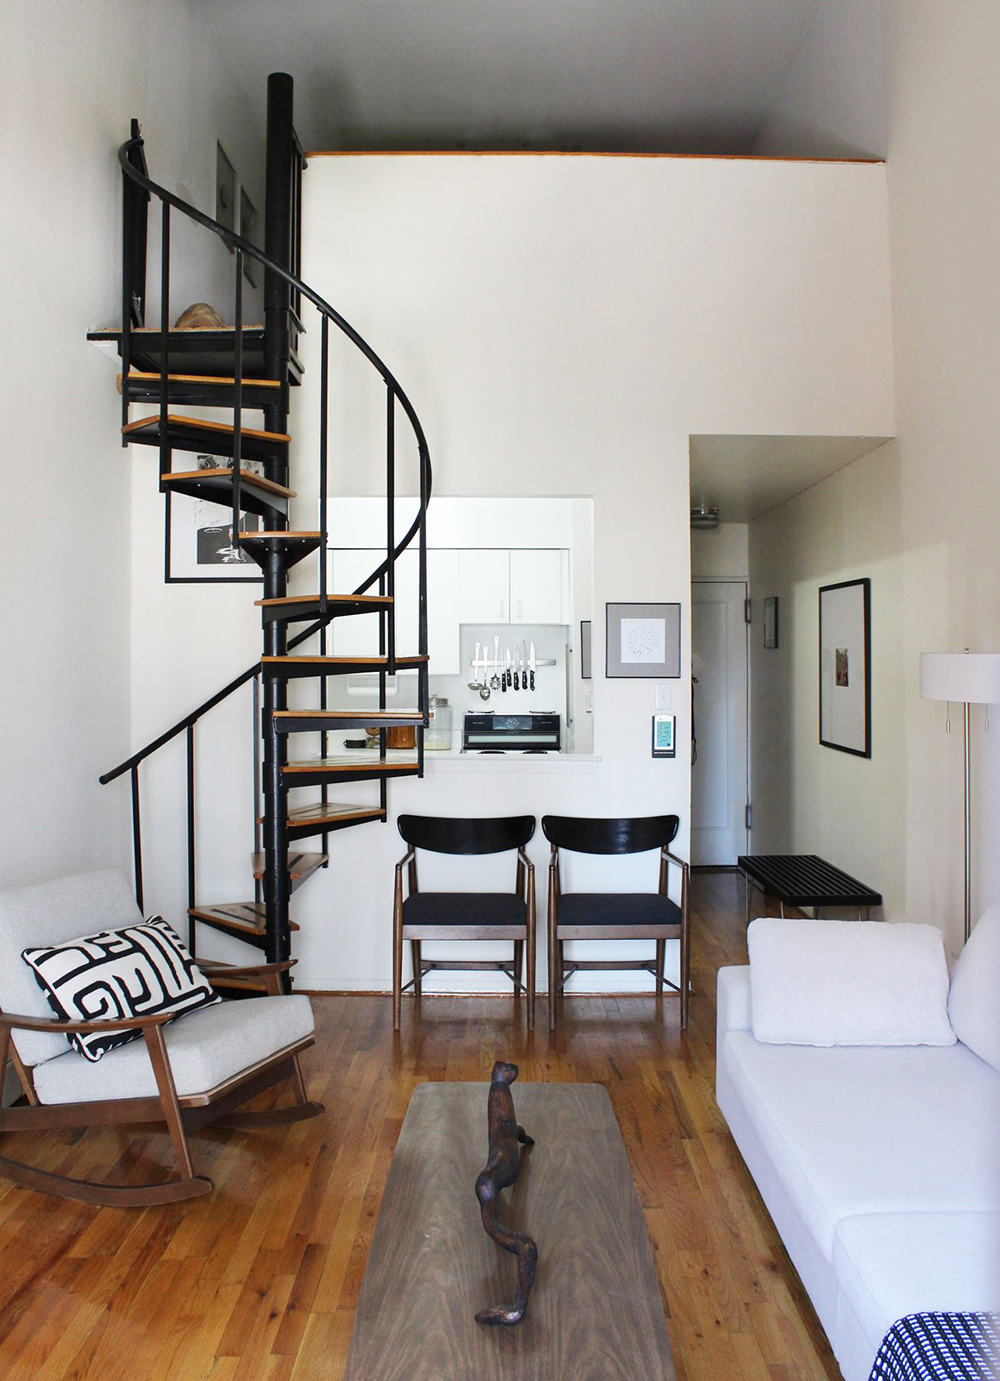 Space saving staircases room for tuesday blog - Small space staircase image ...